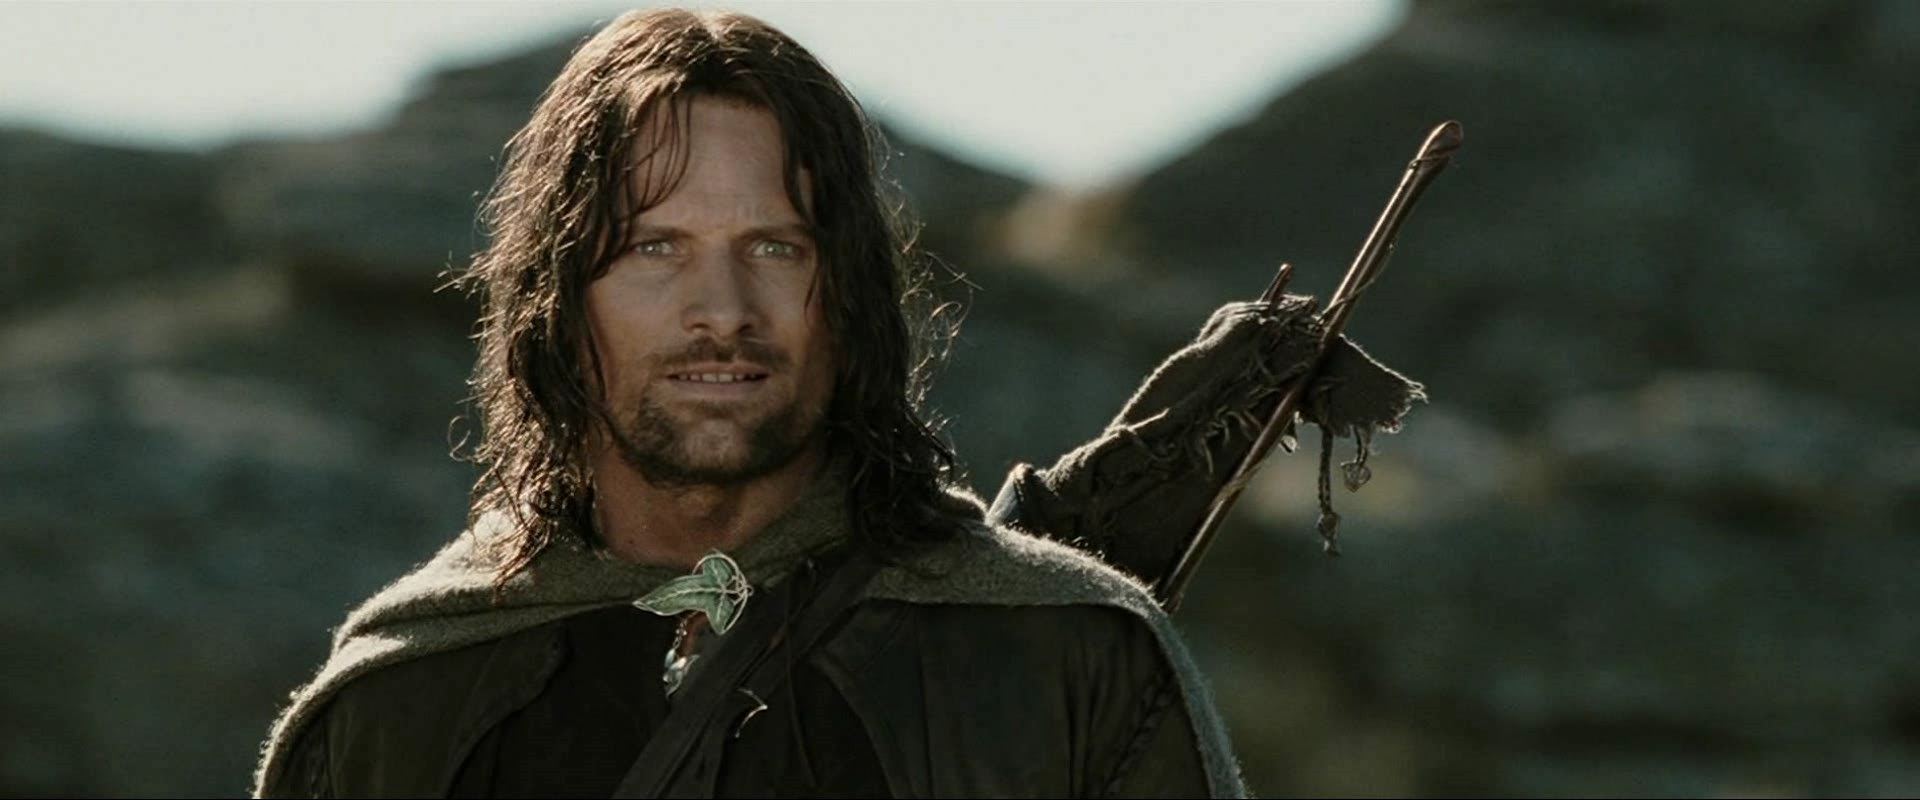 aragorn_two_towers_0.jpg